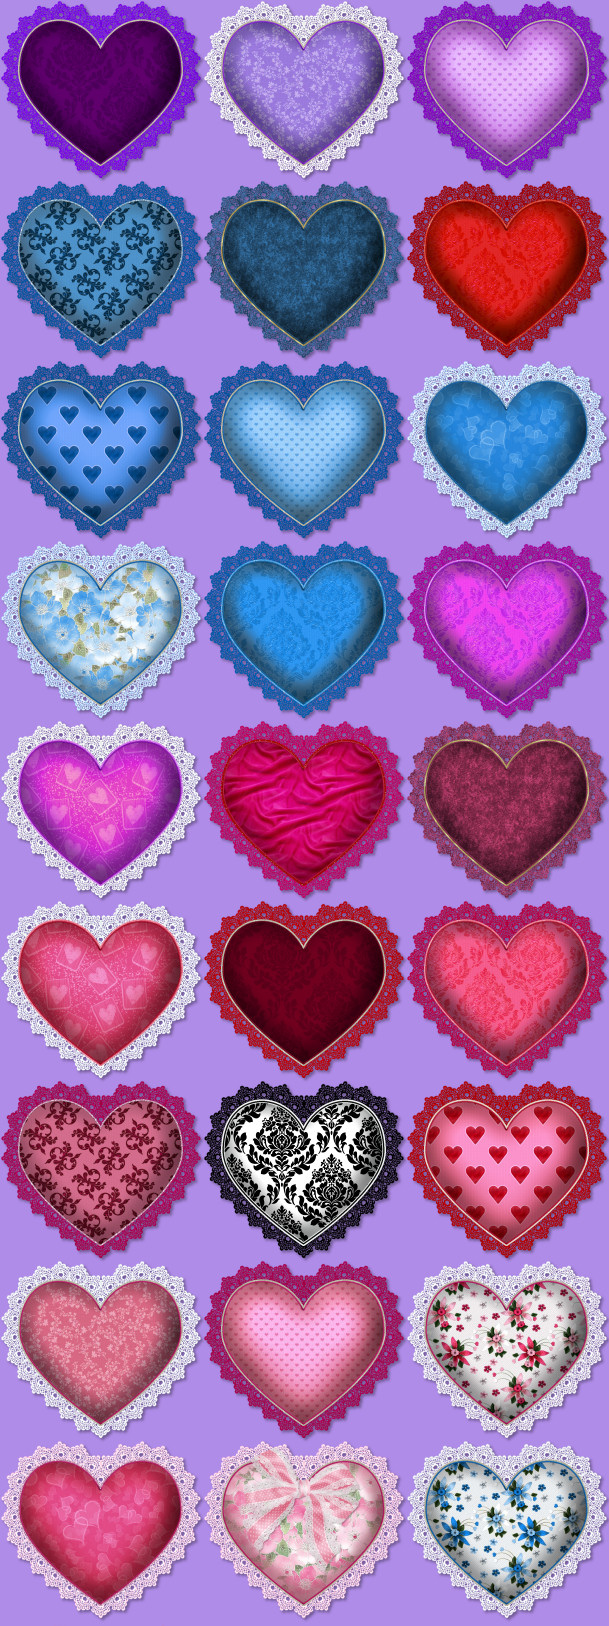 Hearts Psp Tubes Heart Clipart Valentines Fancy Lace